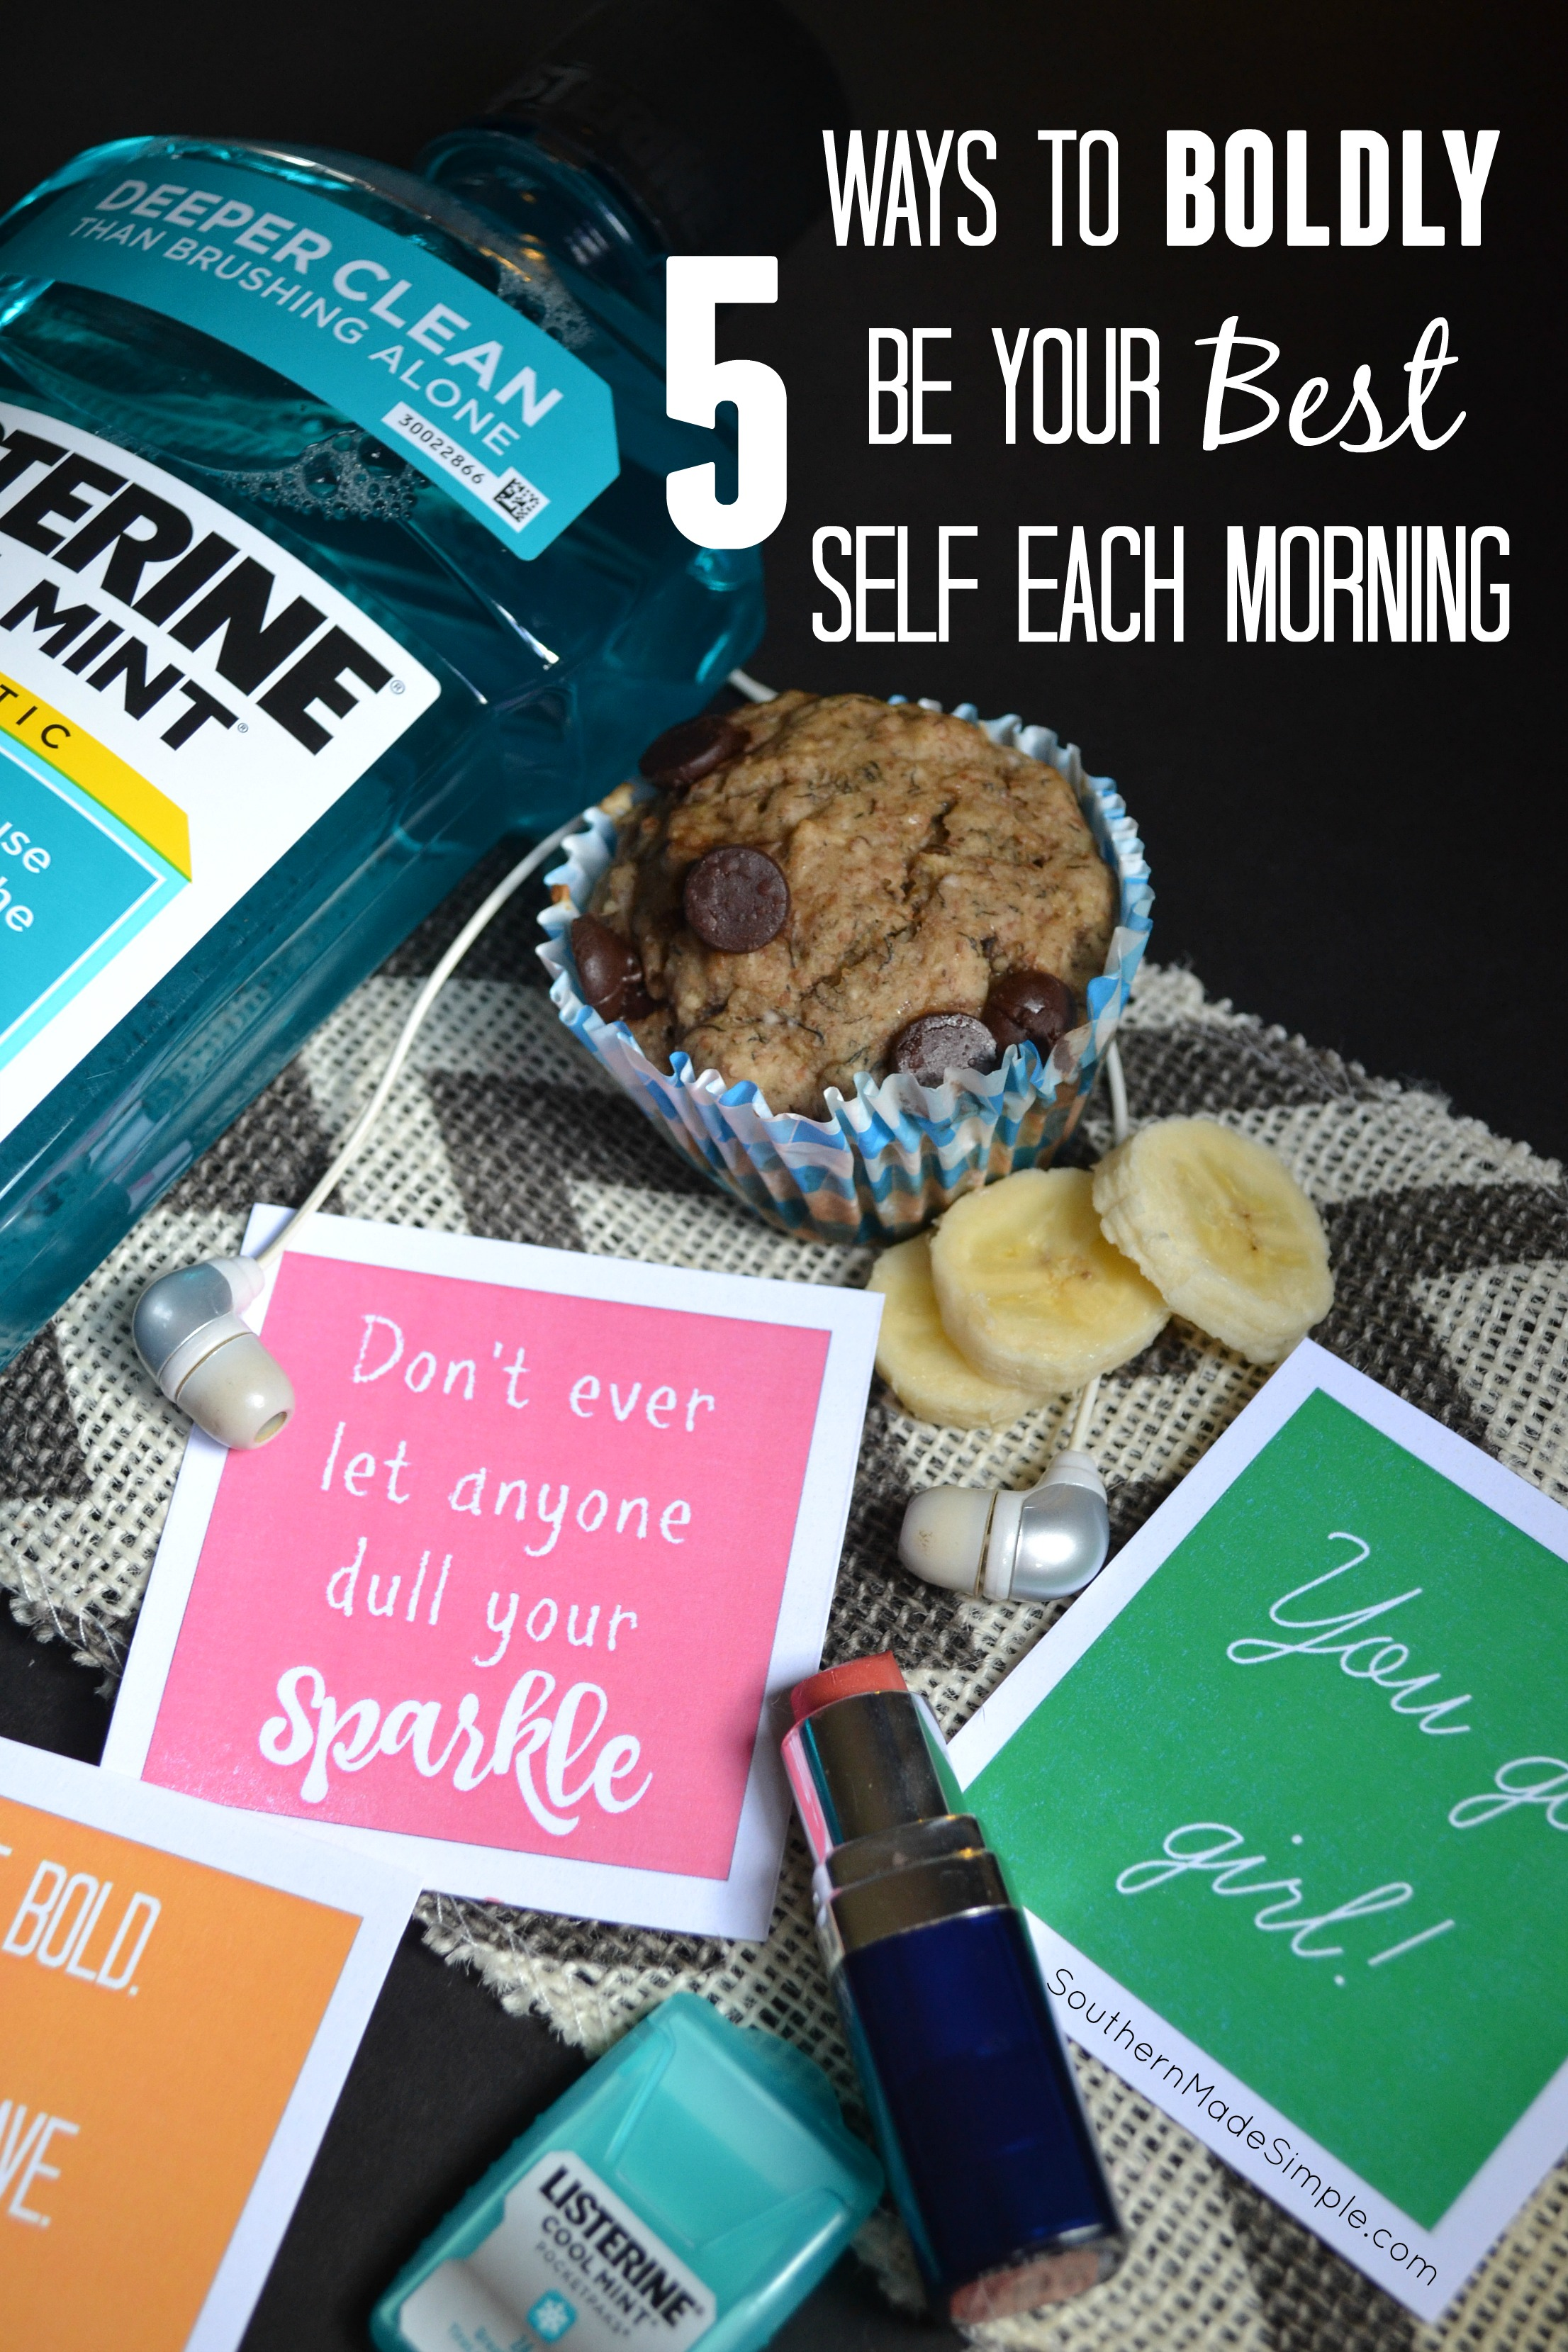 5 Ways to Boldly Be Your Best Self Each Morning {Free Printable Included!} #ListerineBOLD #ad